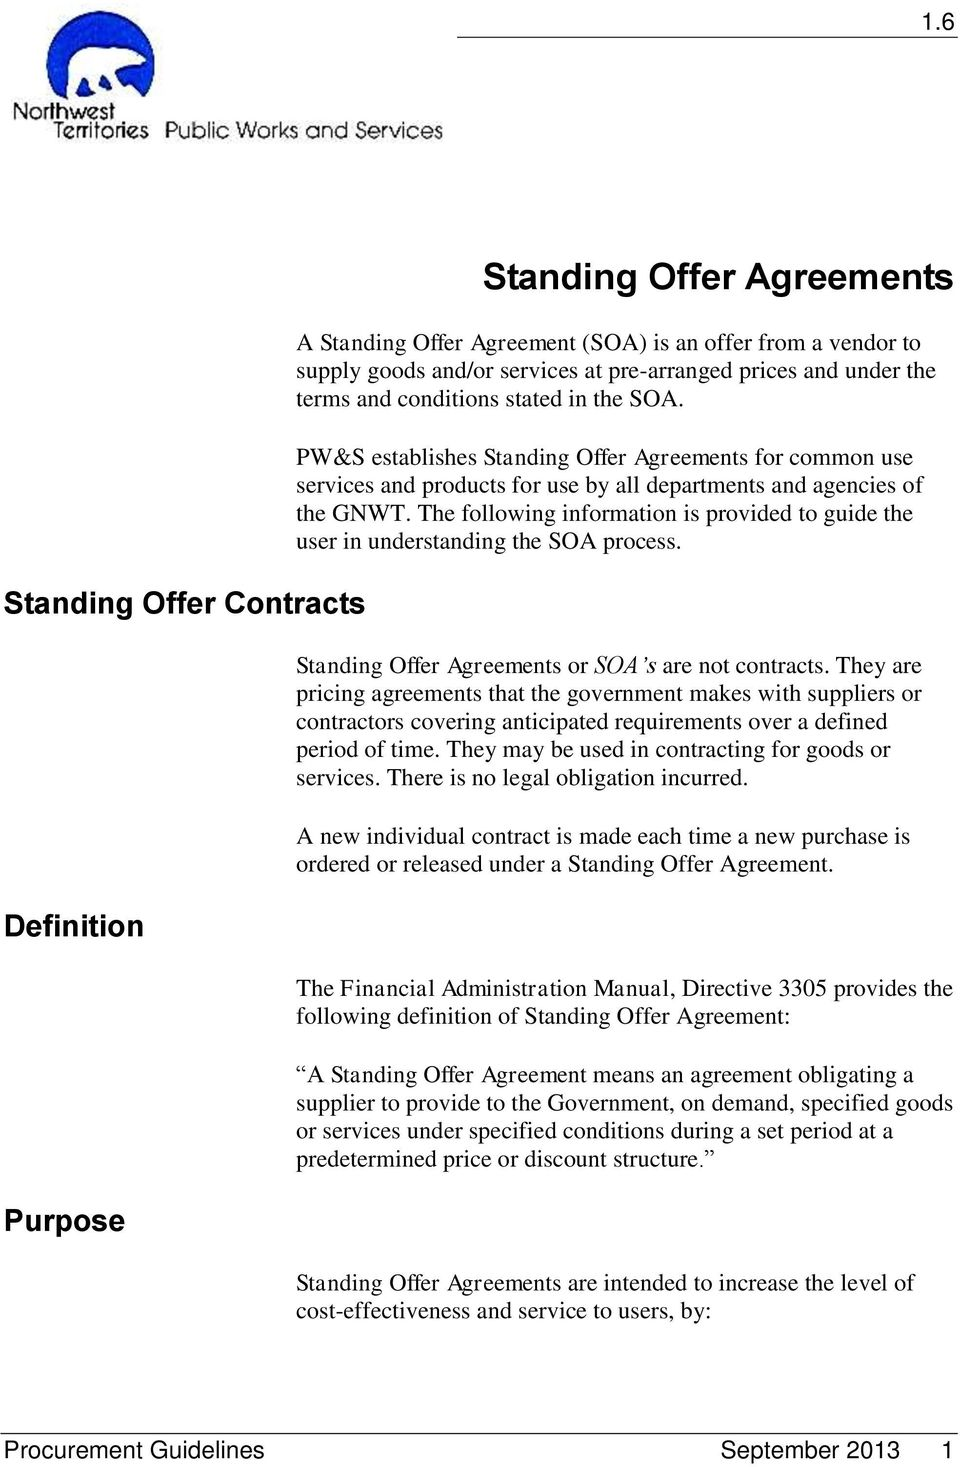 Standing Offer Agreements Pdf